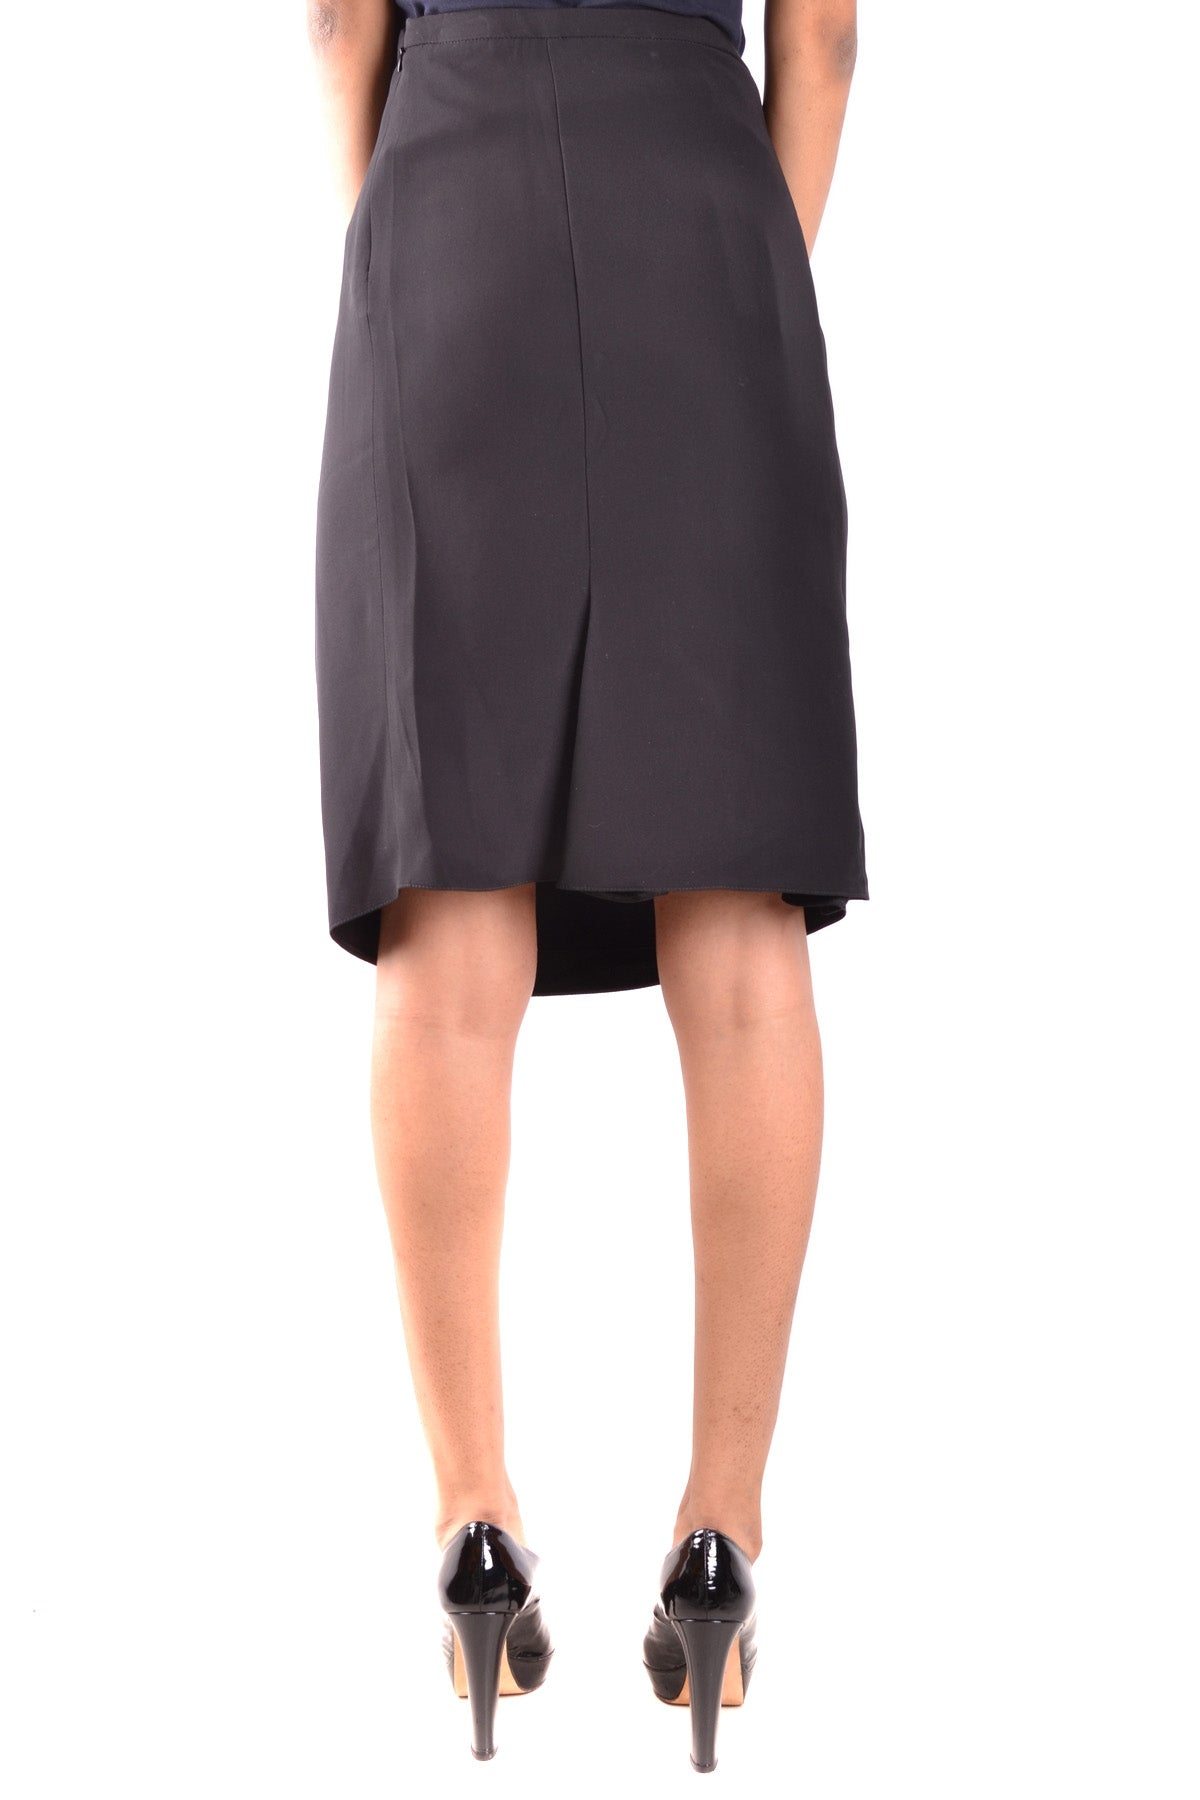 Skirt Armani Collezioni-Skirts - WOMAN-Product Details Terms: New With LabelYear: 2017Main Color: BlackGender: WomanMade In: ItalySize: ItSeason: Spring / SummerClothing Type: SkirtComposition: Acetate 72%, Silk 28%-Keyomi-Sook